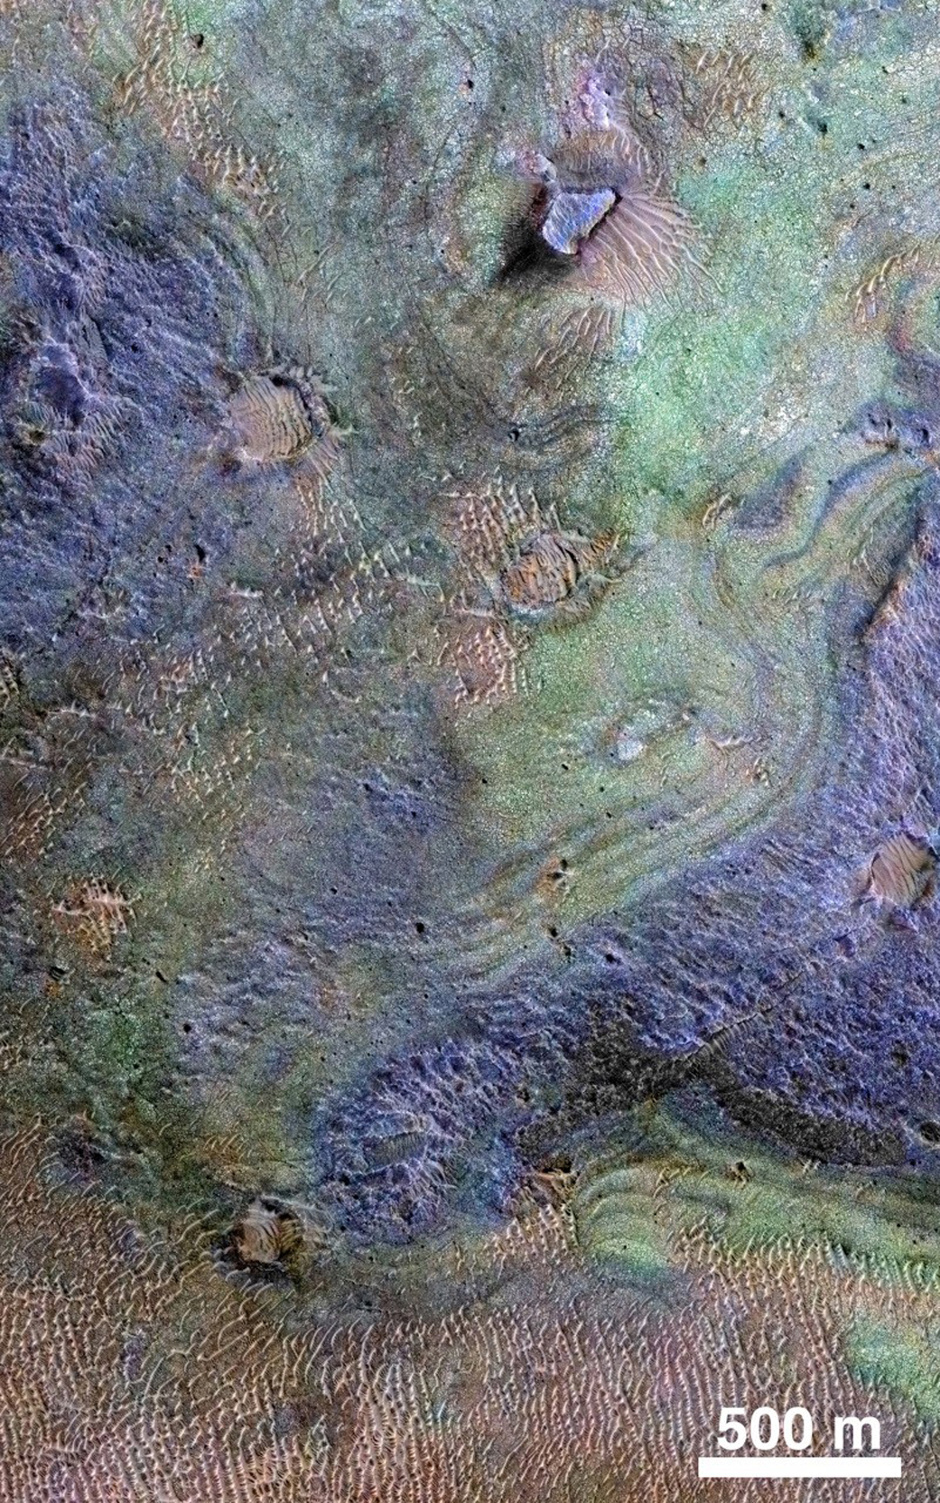 This view combines information from two instruments on NASA's Mars Reconnaissance Orbiter to map colour-coded composition over the shape of the ground in a small portion of the Nili Fossae plains region of Mars' northern hemisphere. This site is part of the largest known carbonate-rich deposit on Mars. In the colour coding used for this map, green indicates a carbonate-rich composition, brown indicates olivine-rich sands, and purple indicates basaltic composition. Image credit: NASA/JPL-Caltech/JHUAPL/Univ. of Arizona.